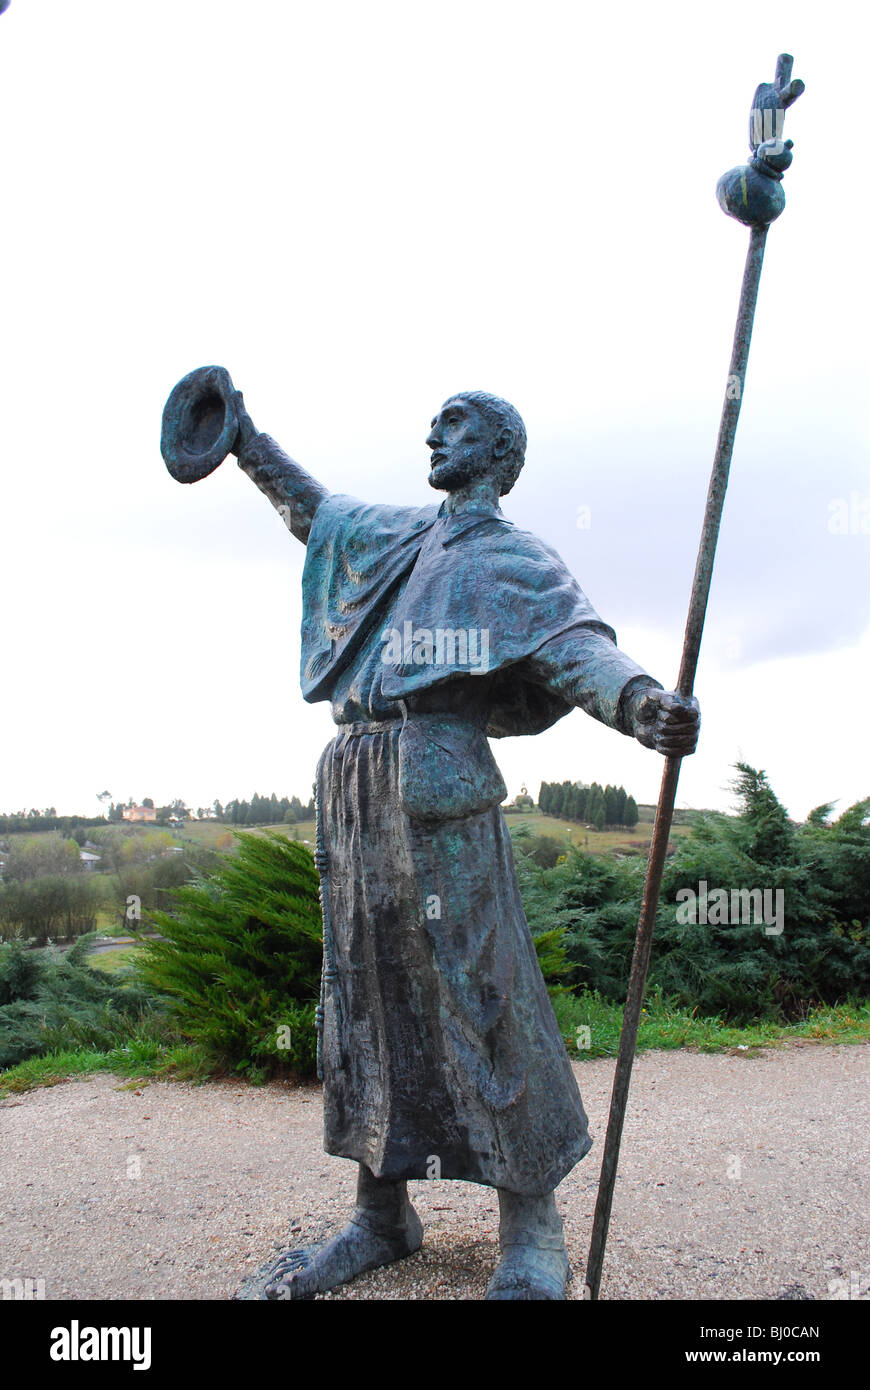 Sculptures of pilgrims at Monte do Gozo hailing Santiago de Compostela cathedral in the distance in Galicia, Spain. Stock Photo